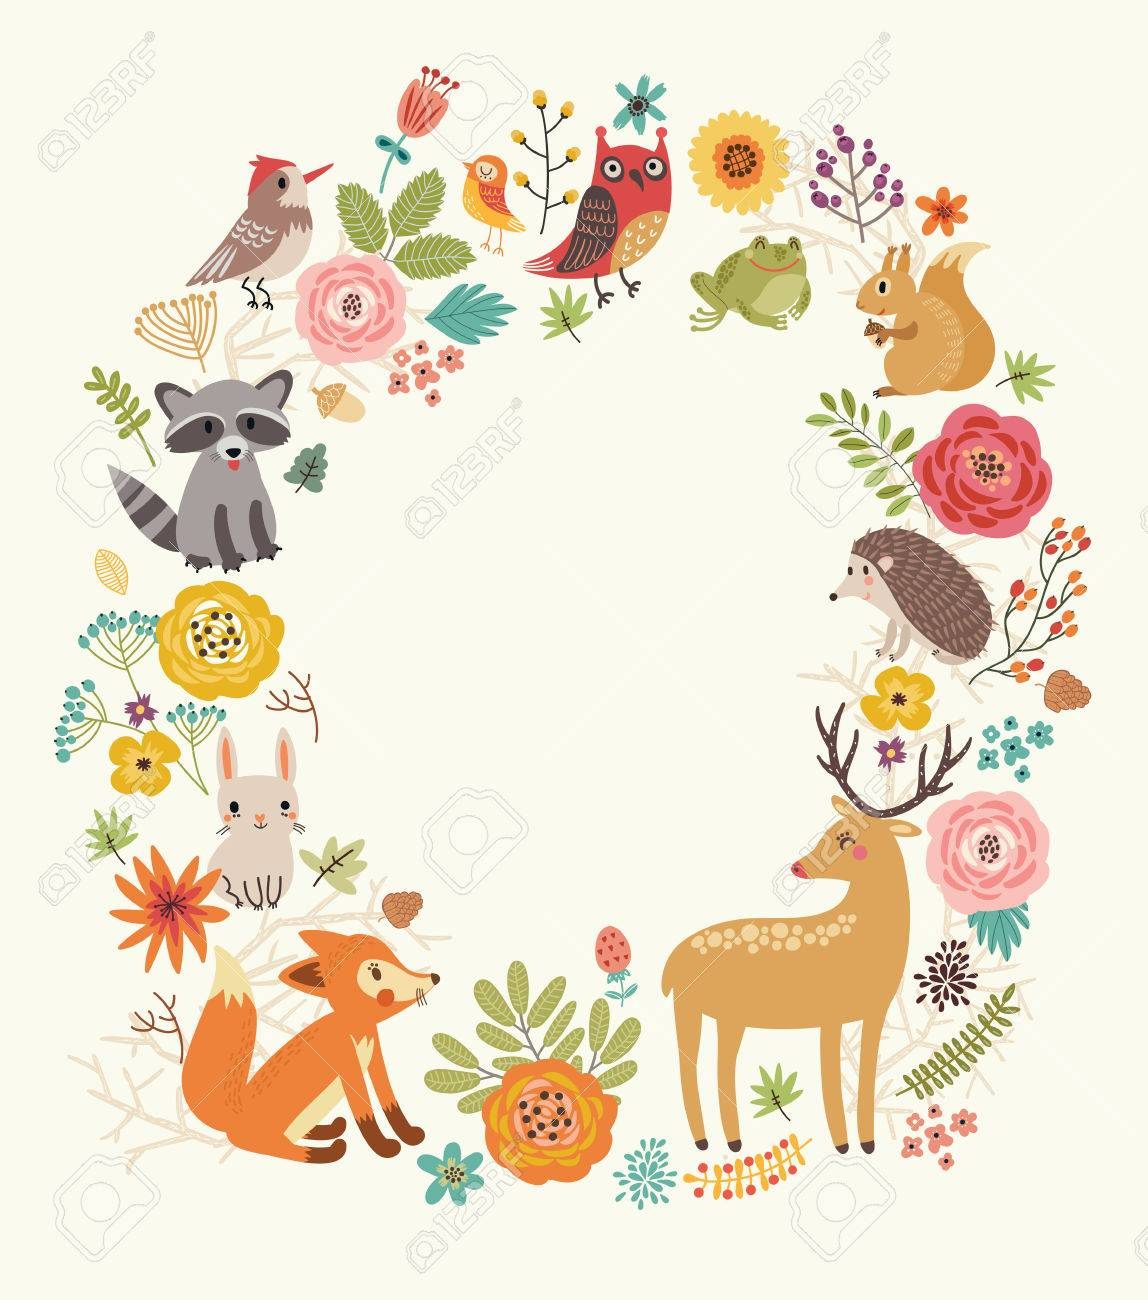 Forest background with animals - 77627480